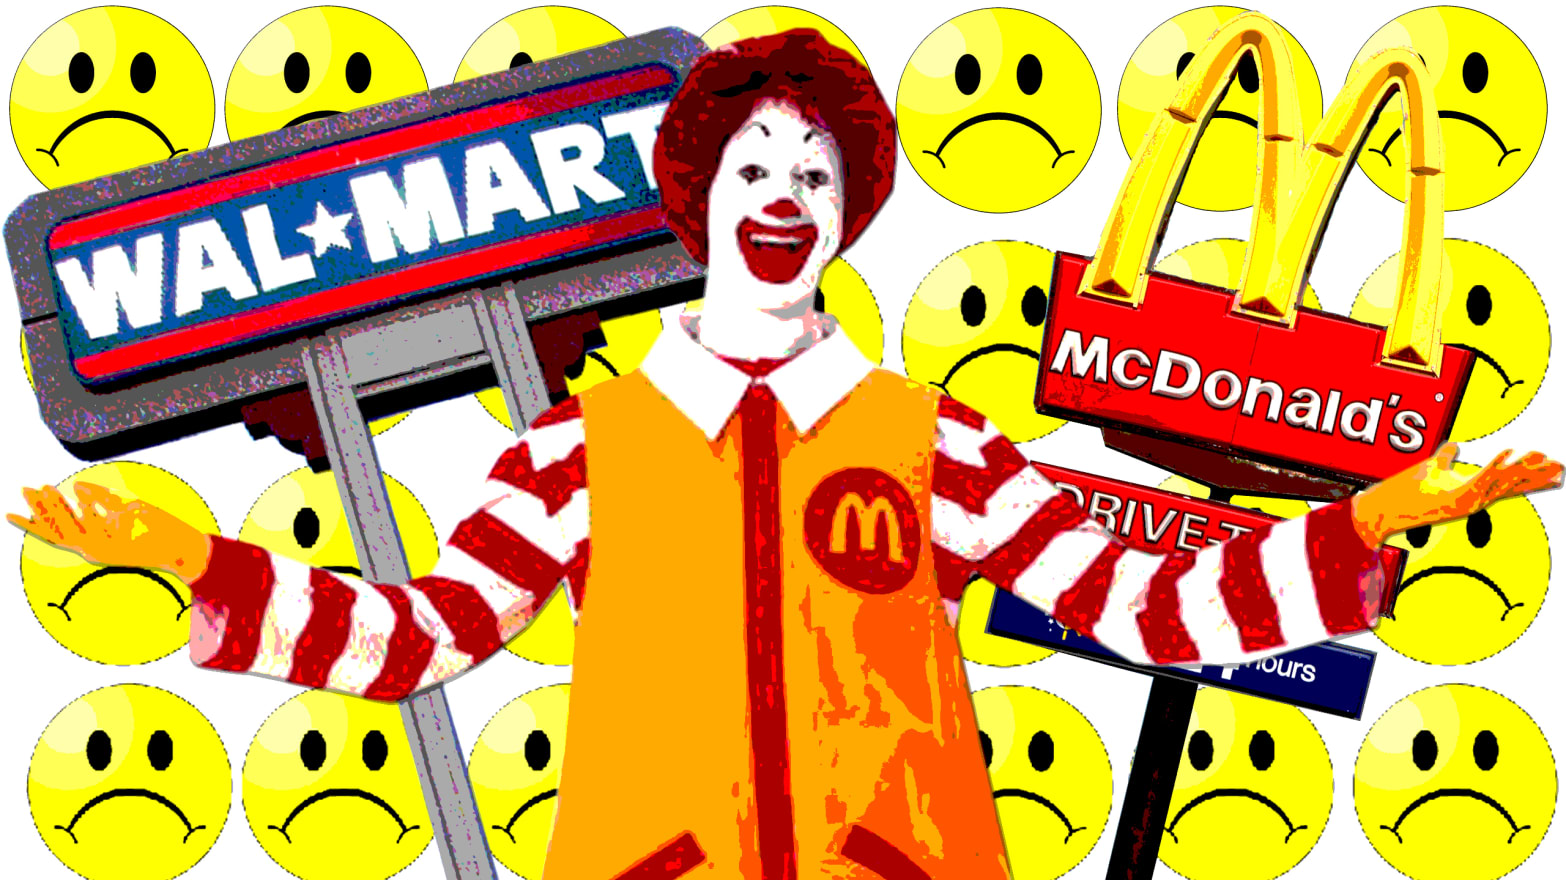 Walmart and McDonald's, Out and Proud as Corporate Scrooges